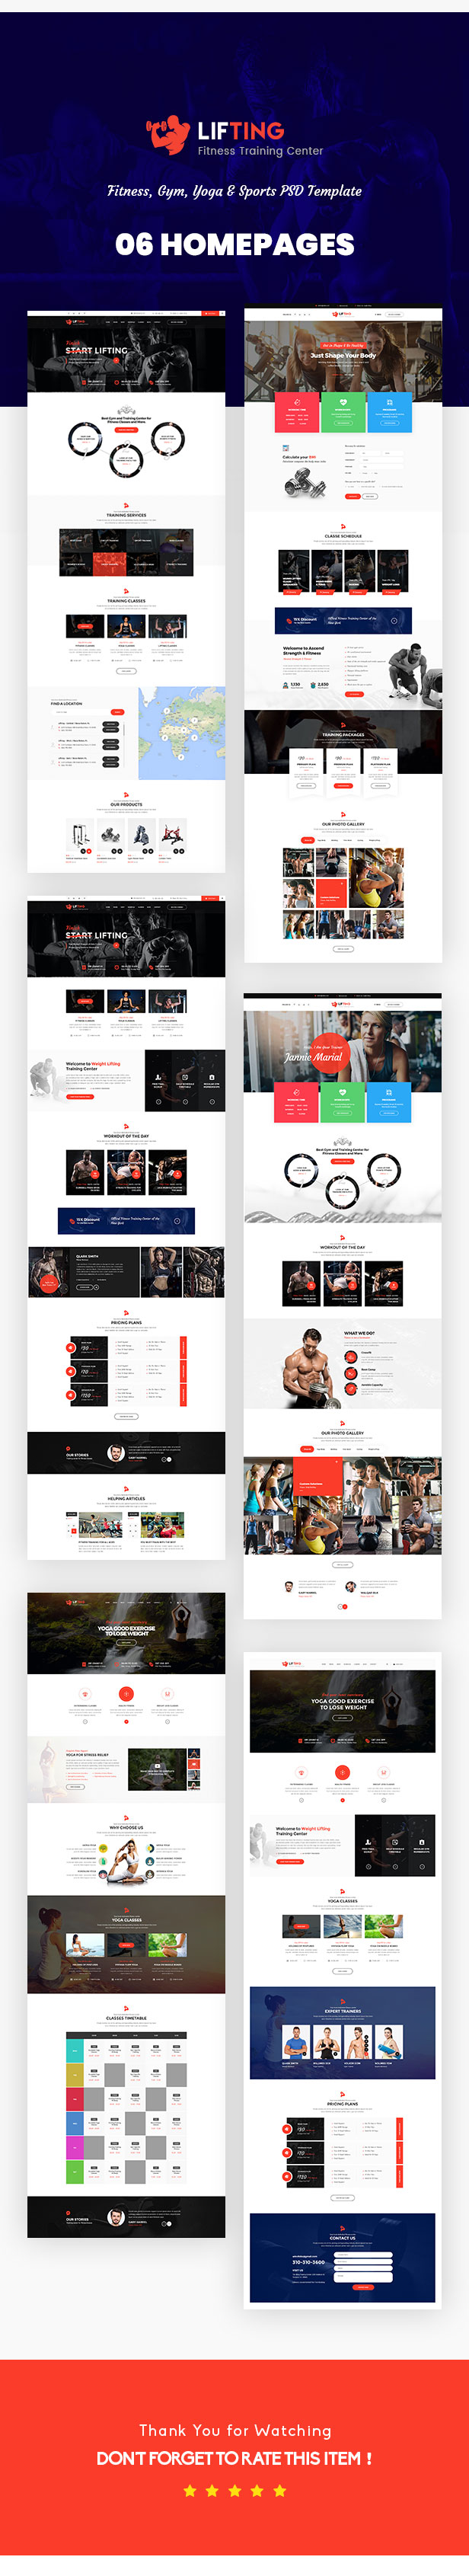 Lifting - Fitness, Gym, Yoga & Sports PSD Template - 2